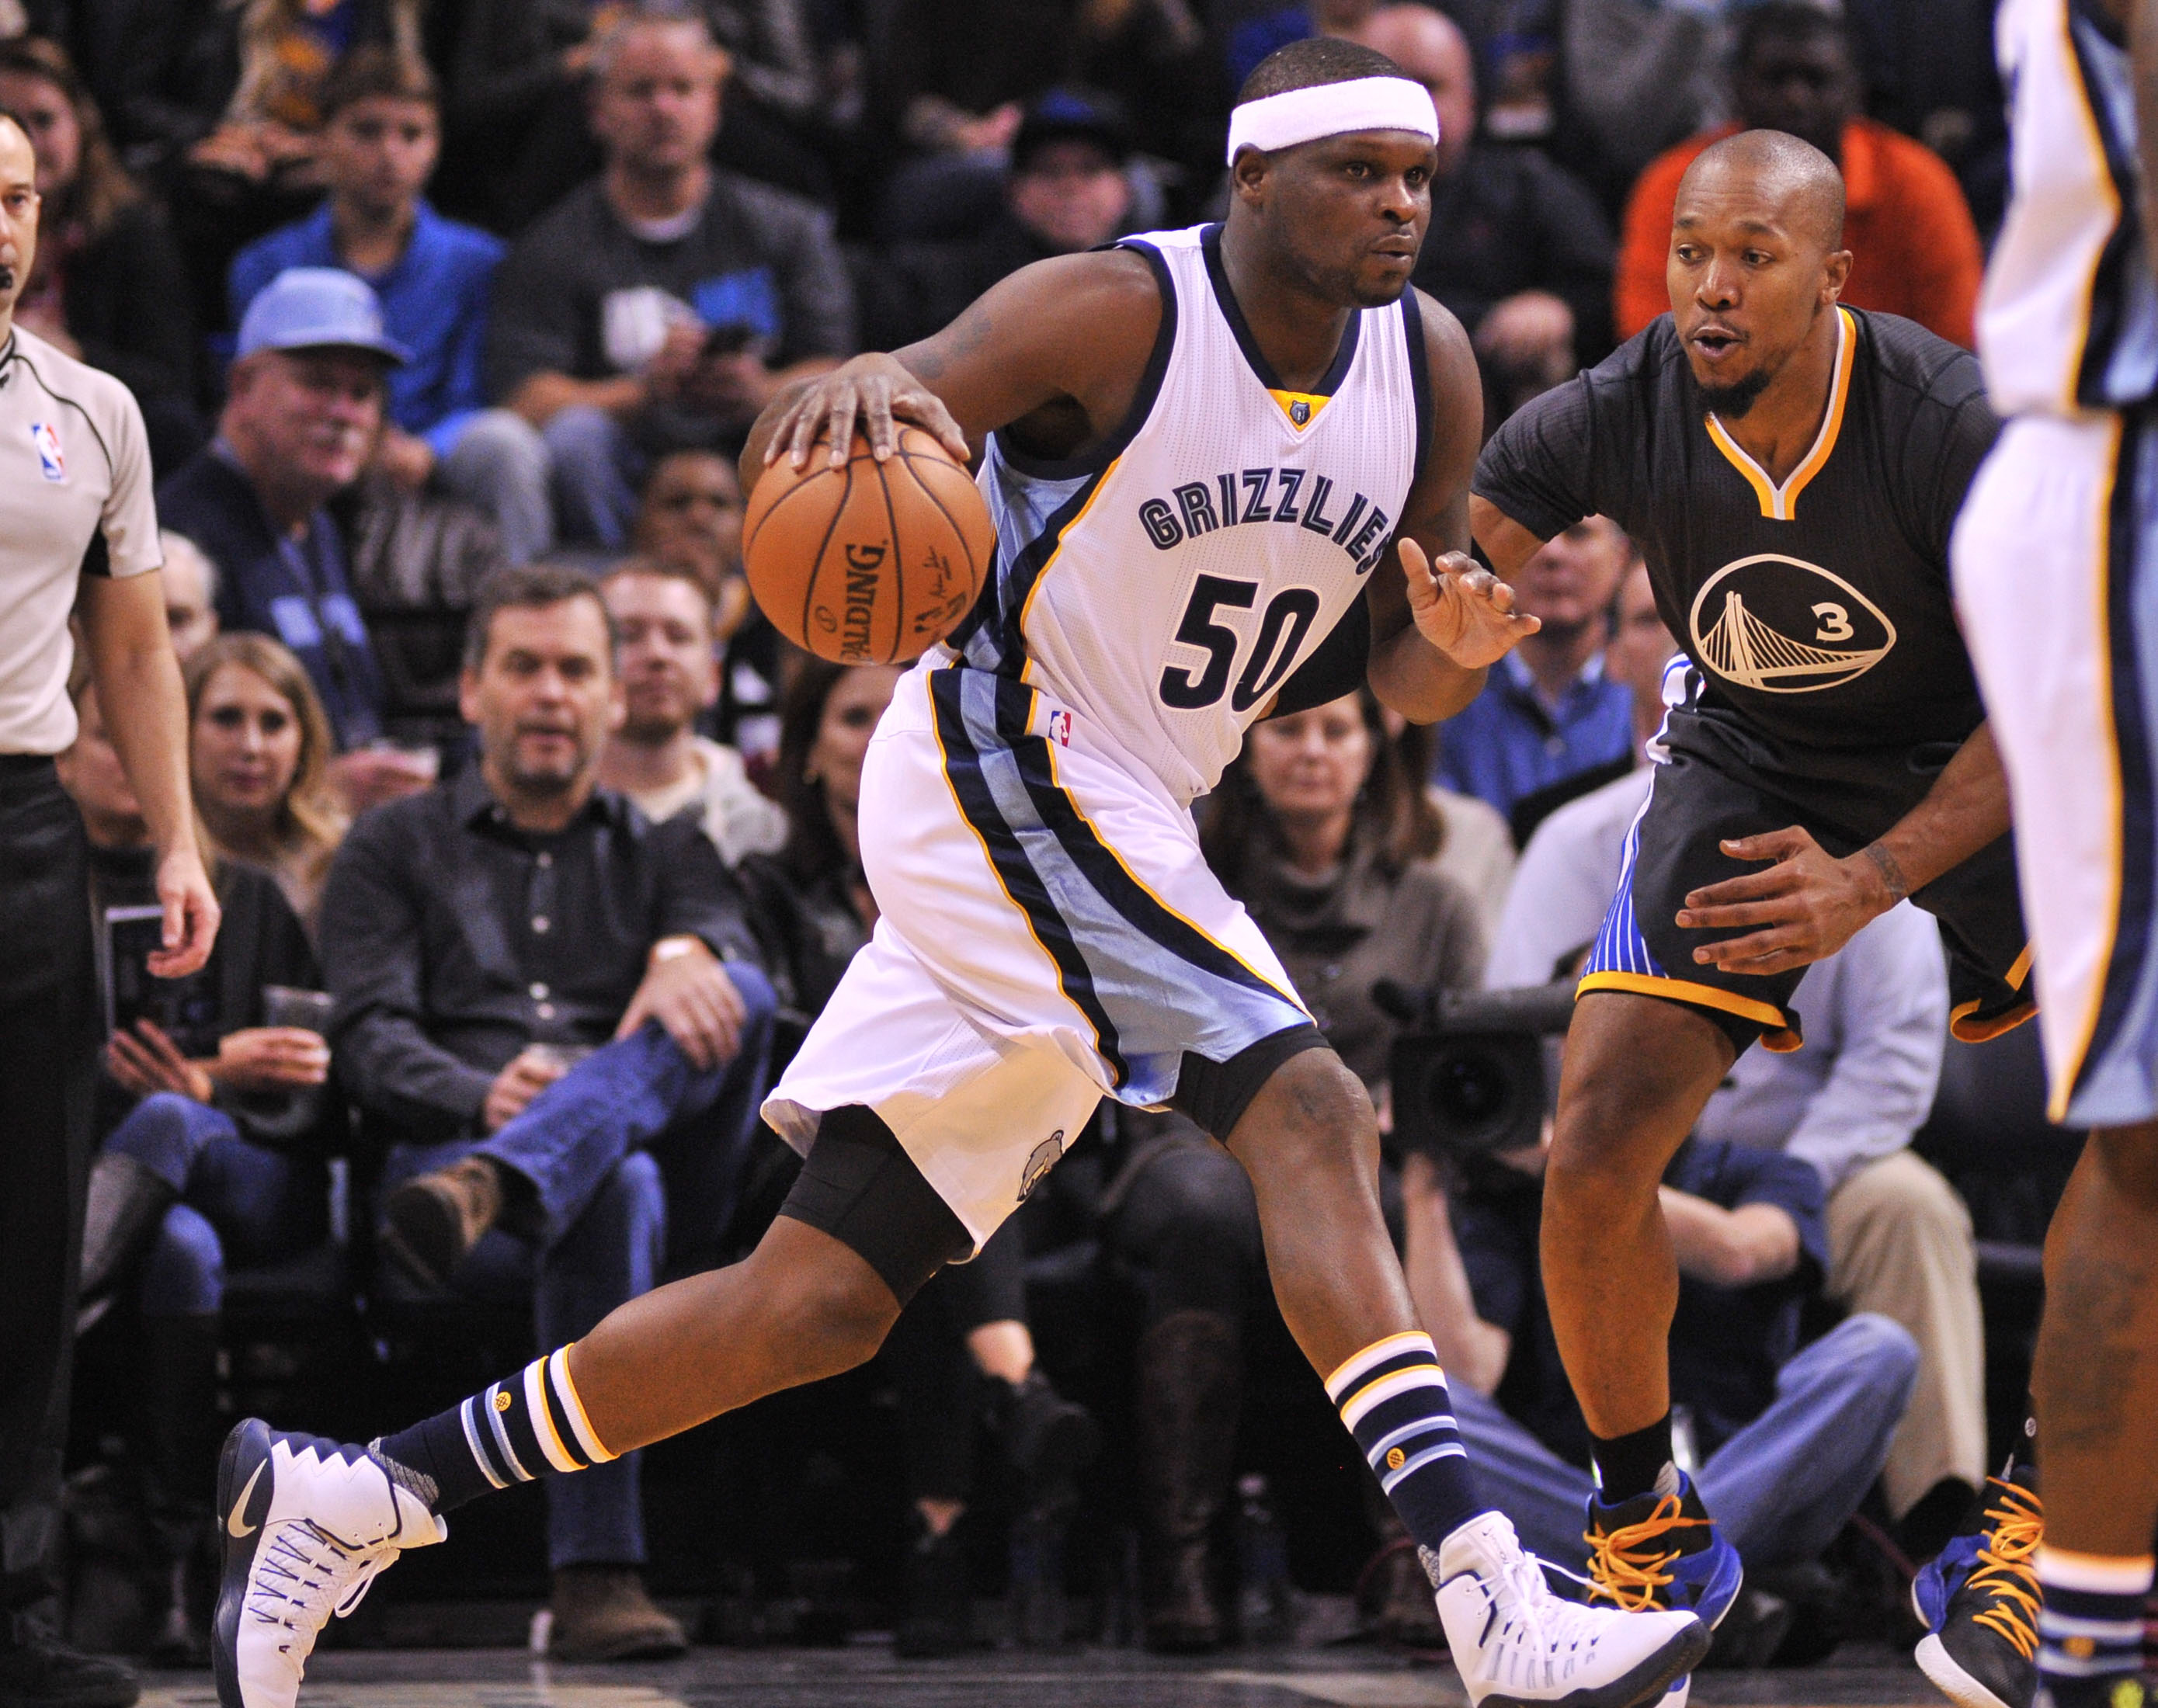 Dec 10, 2016; Memphis, TN, USA; Memphis Grizzlies forward Zach Randolph (50) handles the ball against Golden State Warriors forward David West (3) during the game at FedExForum. Memphis Grizzlies defeated the Golden State Warriors 110-89. Mandatory Credit: Justin Ford-USA TODAY Sports